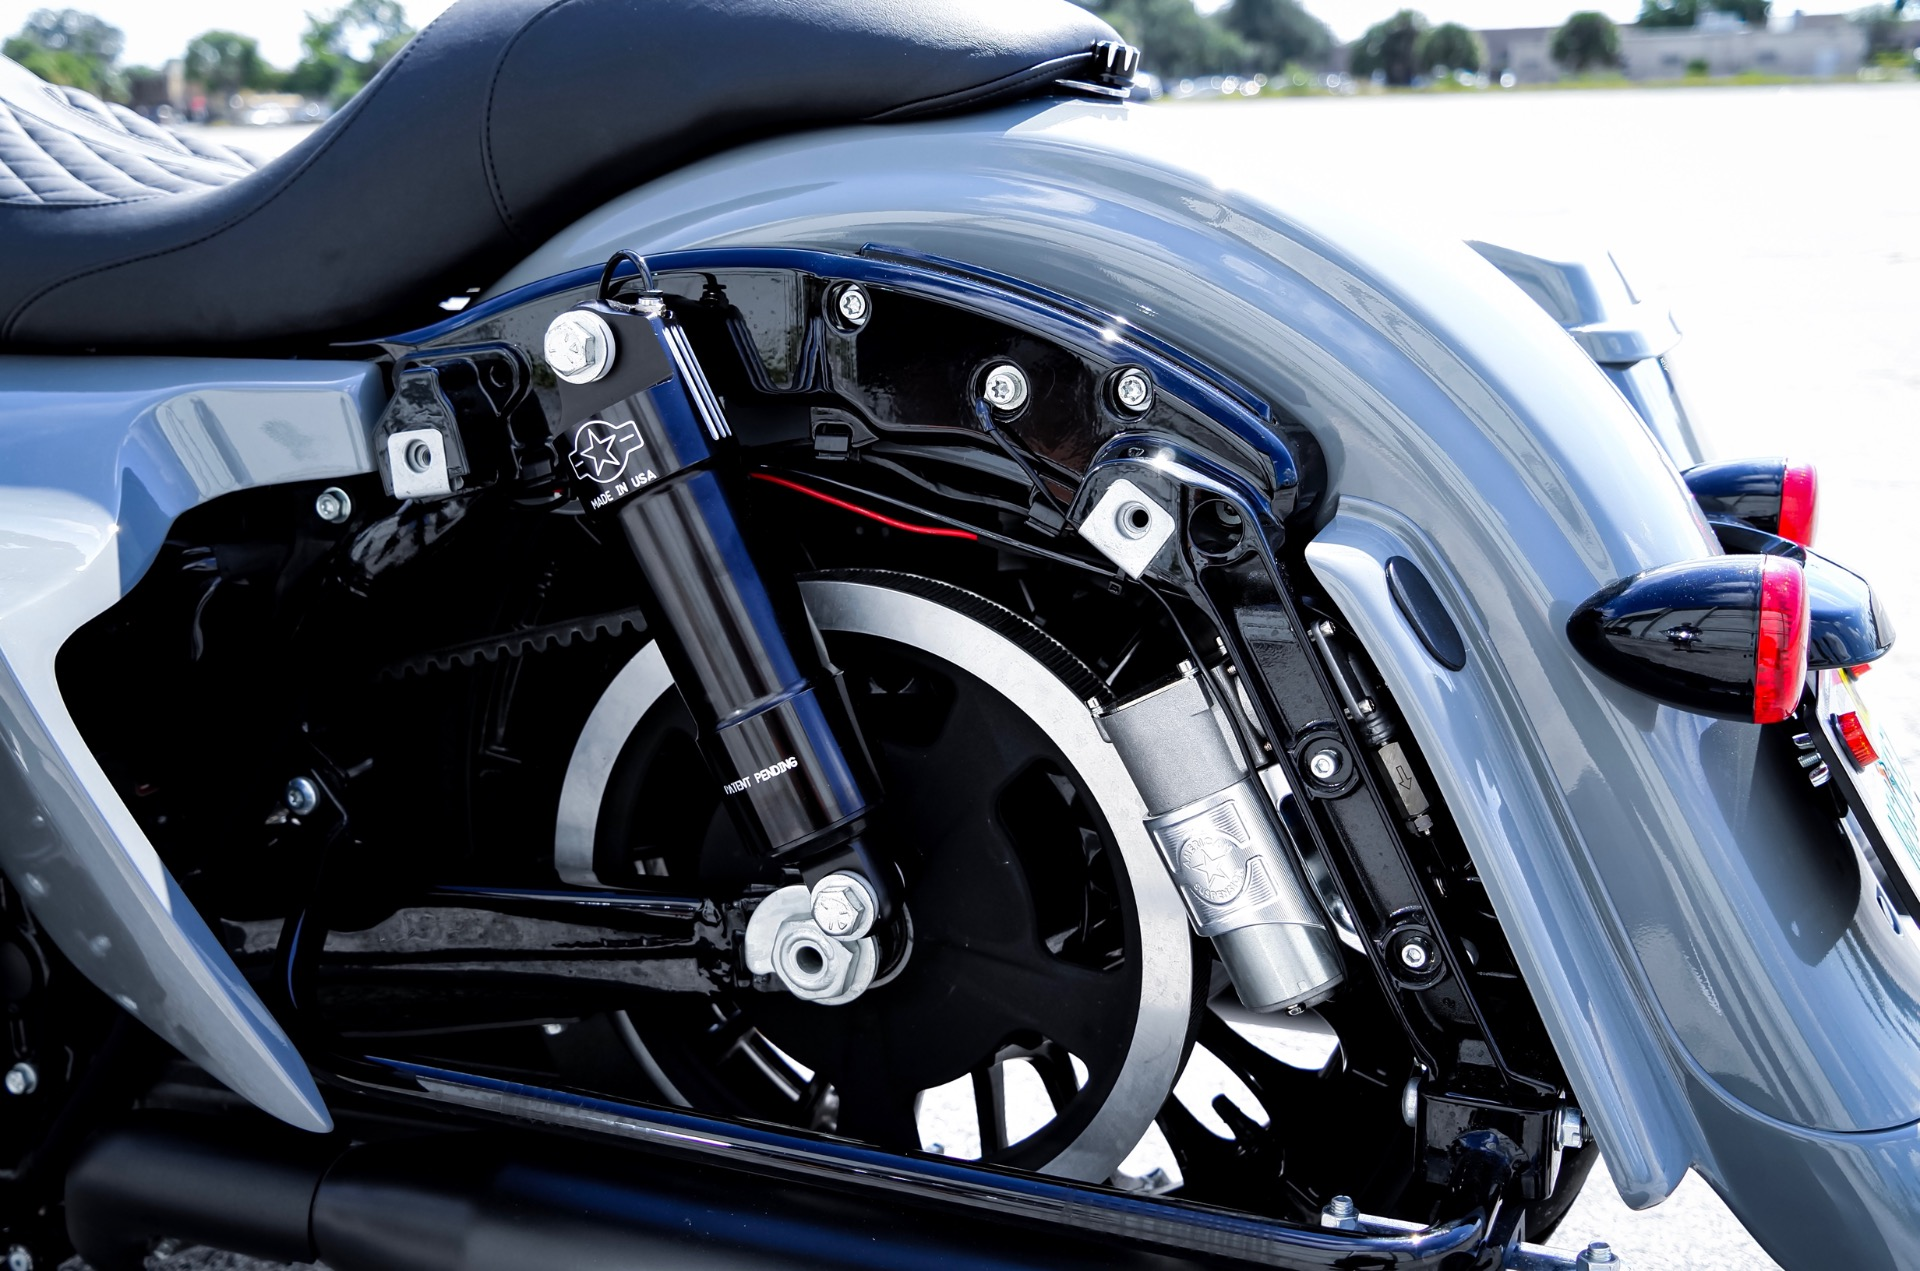 Used 2018 Harley Davidson Flhrxs Road King Special Custom Bagger For Sale 26 750 Track And Field Motors Stock 661259